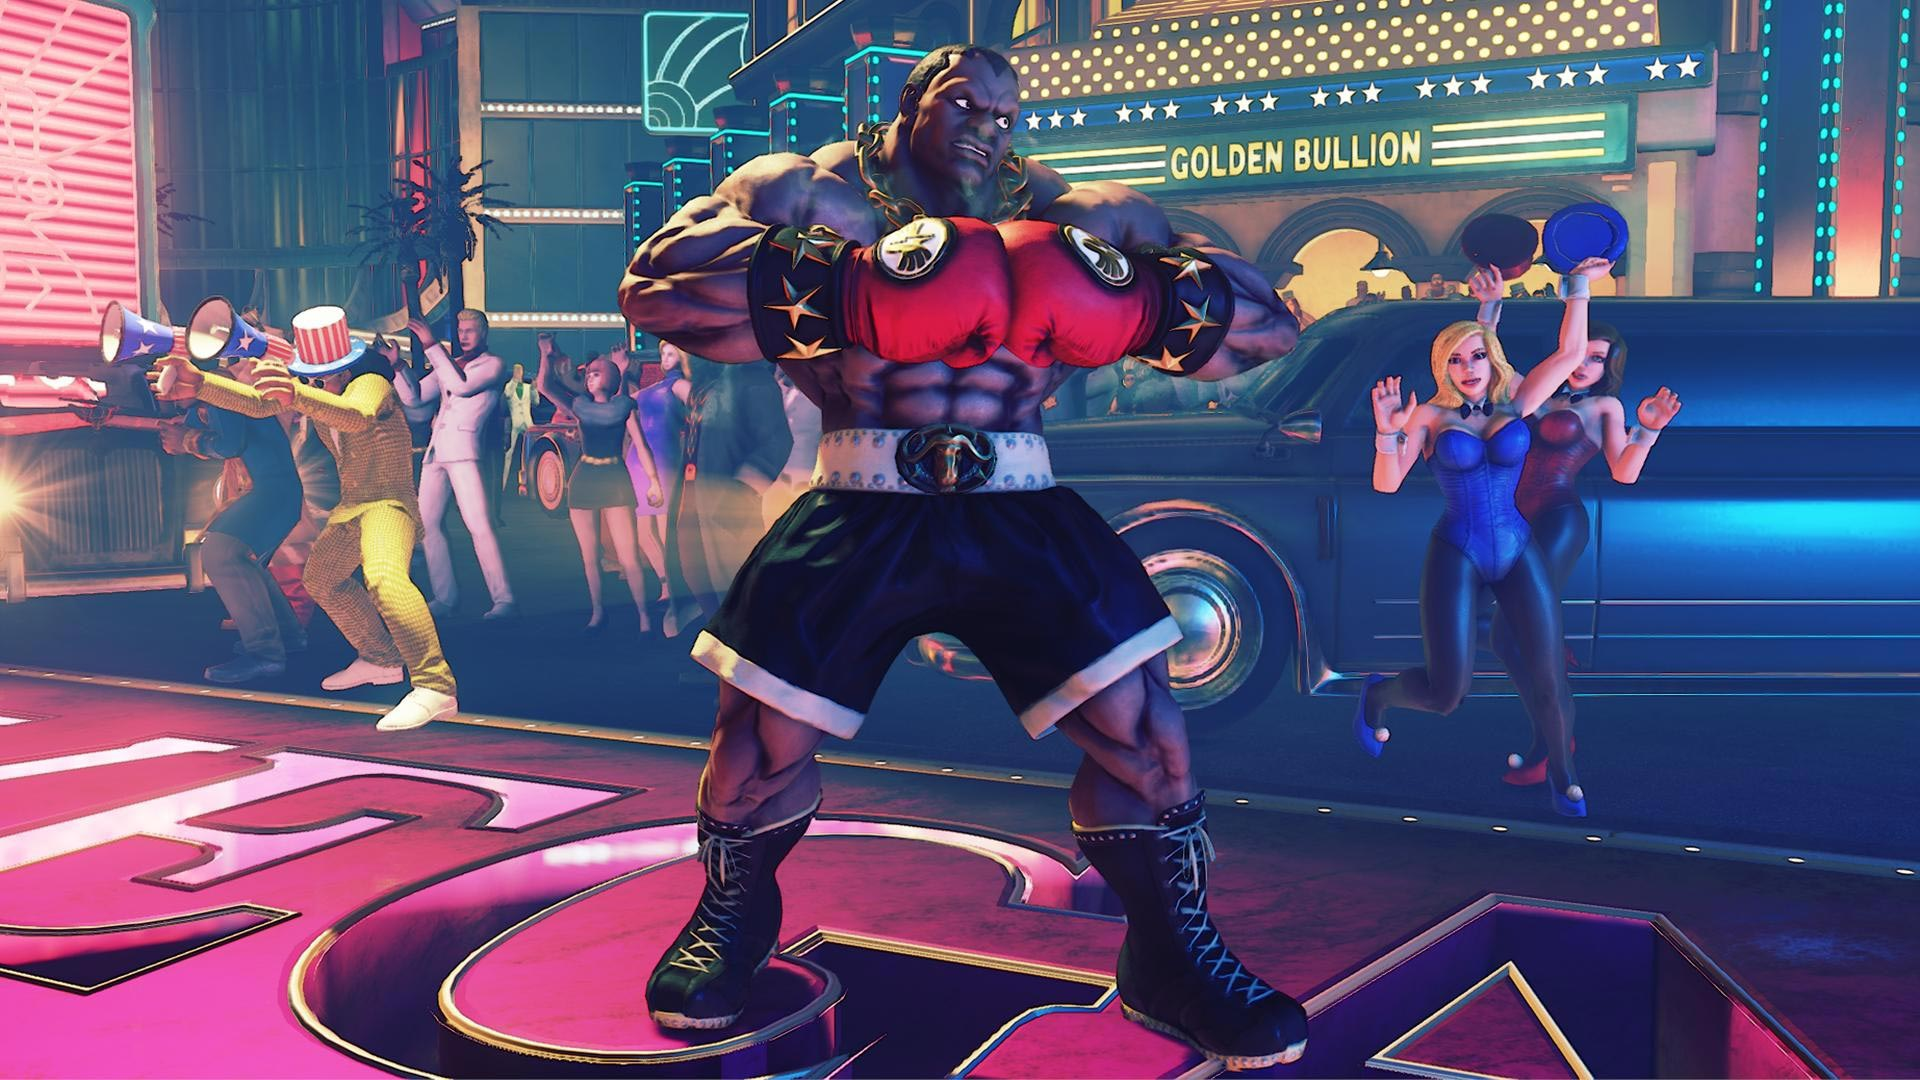 New Balrog costume in Street Fighter 5 1 out of 1 image gallery